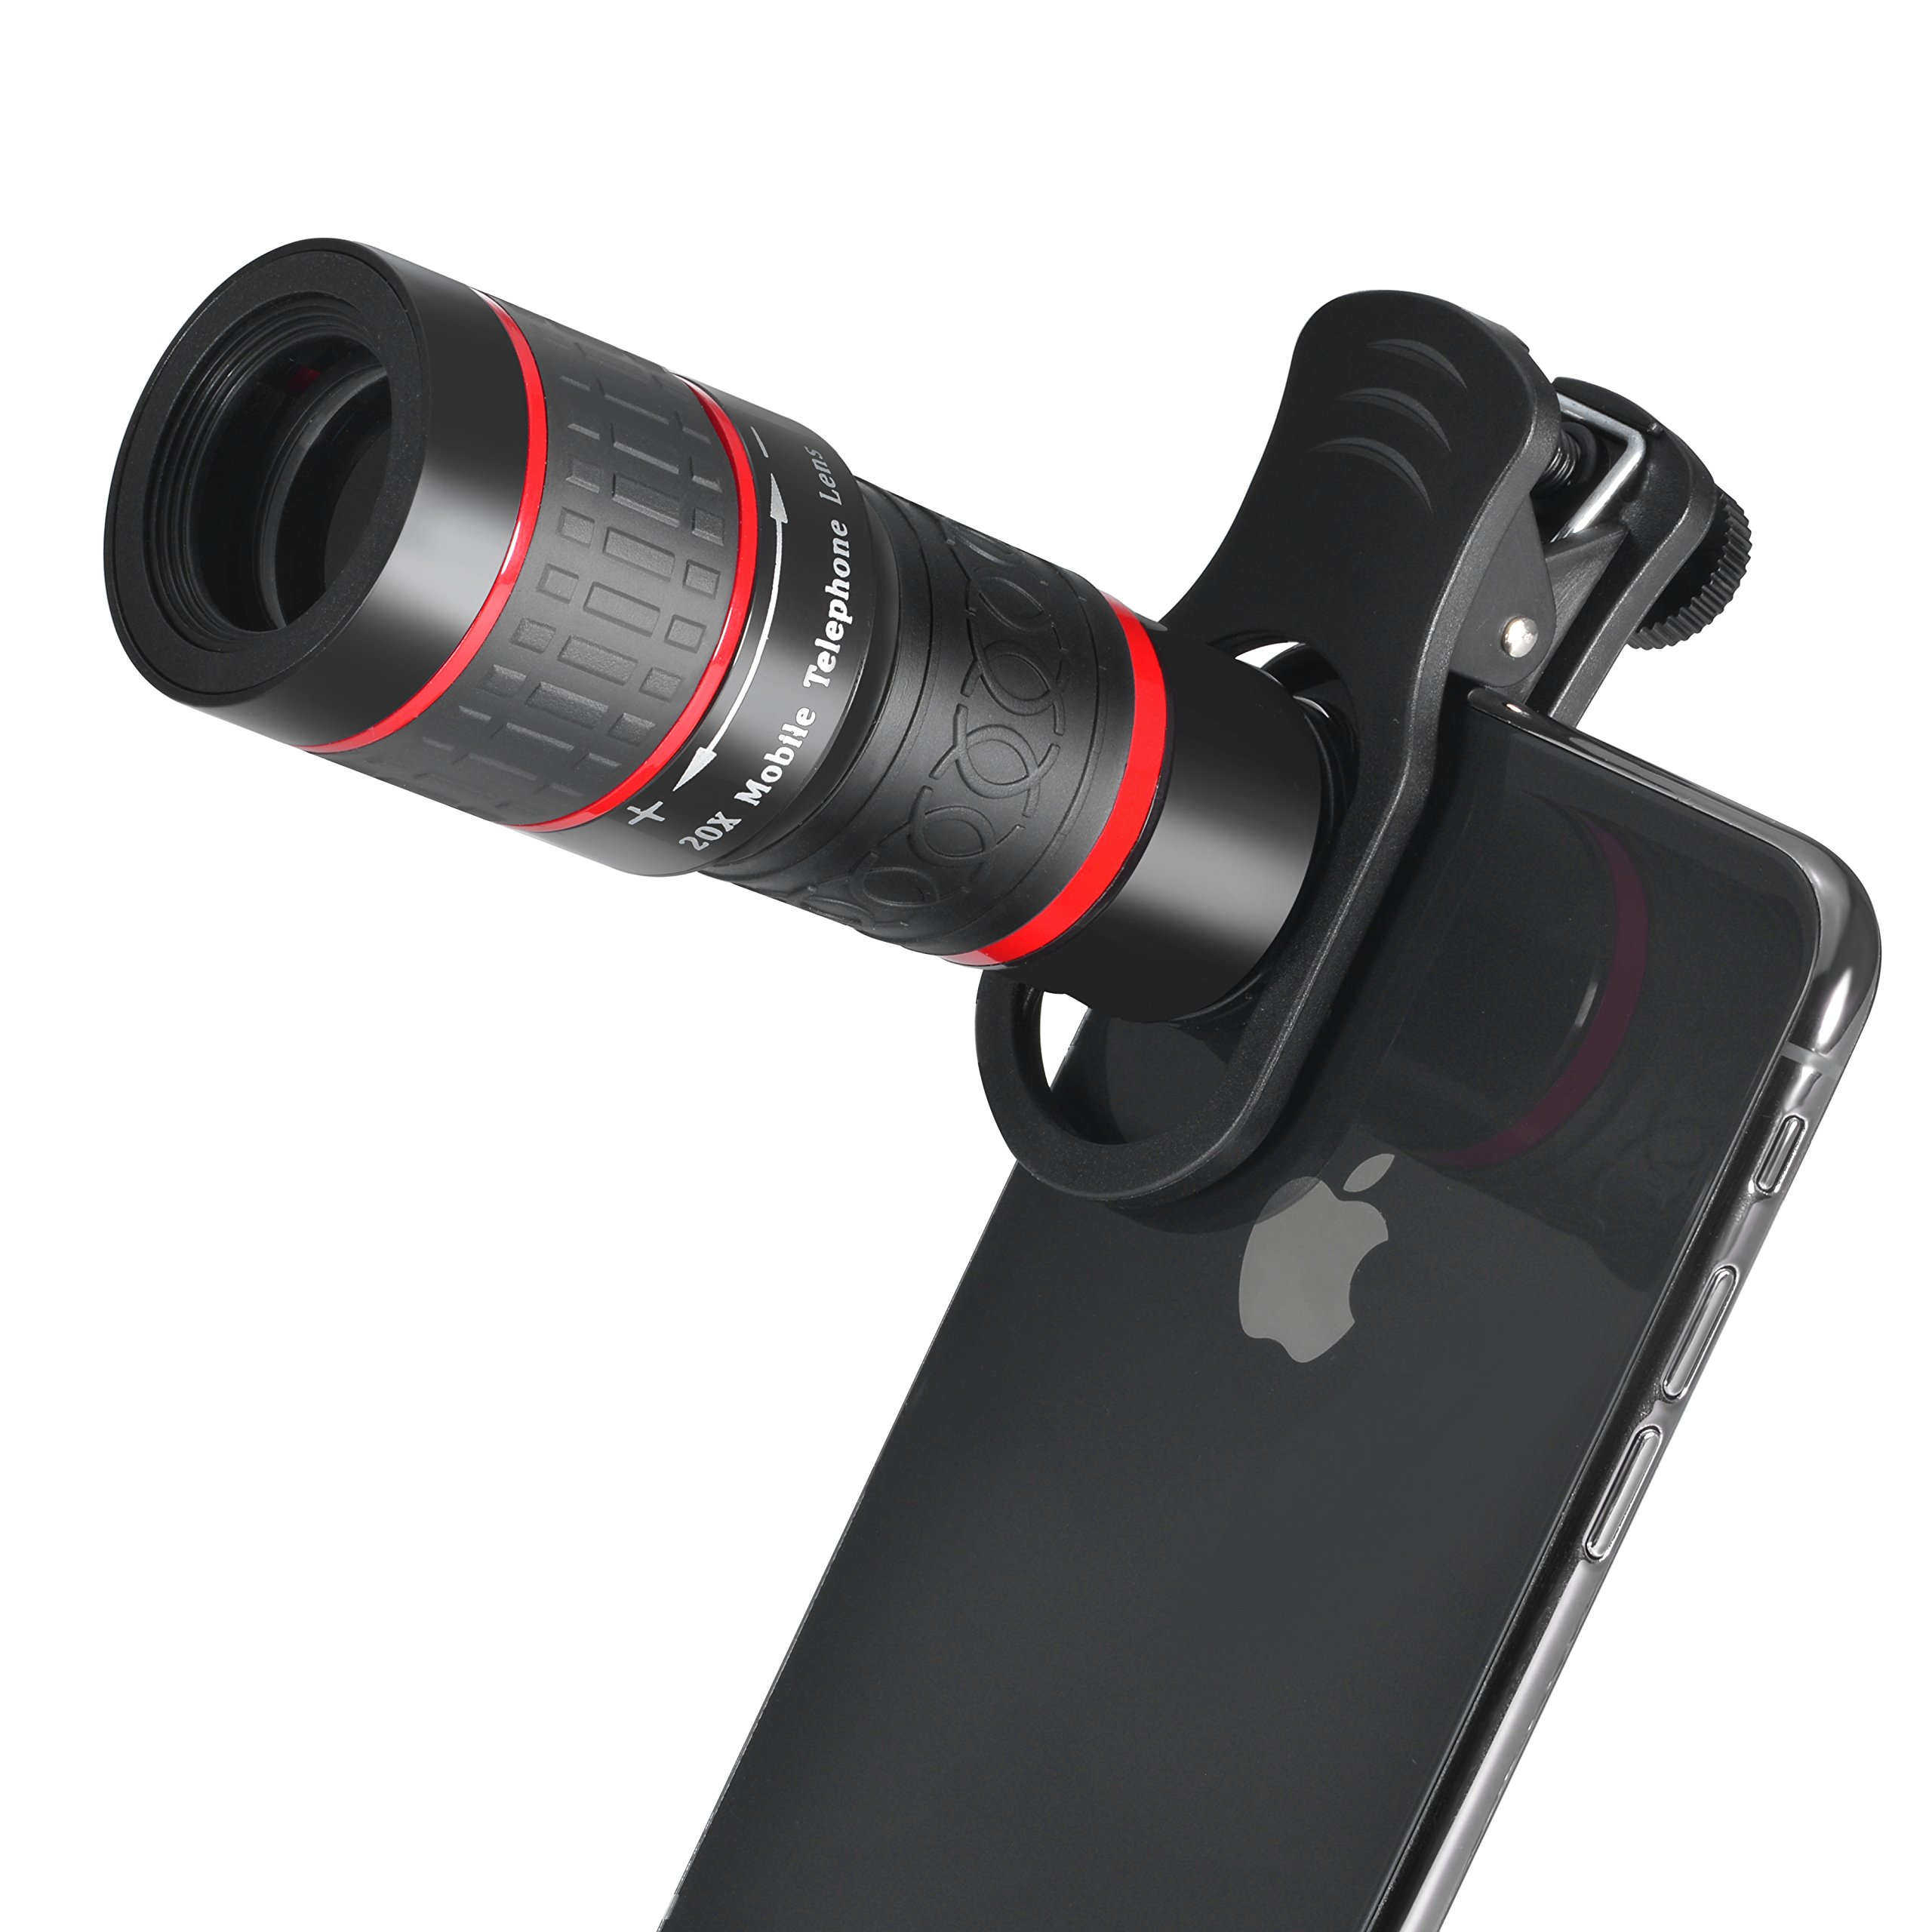 High Stability Clip-on 20X Telephoto Lens, MY MIRACLE Cell Phone Telescope Lens Manual Control for iPhoneX 8, 7, 6, 6s plus Samsung Galaxy,Android and Most Smartphones